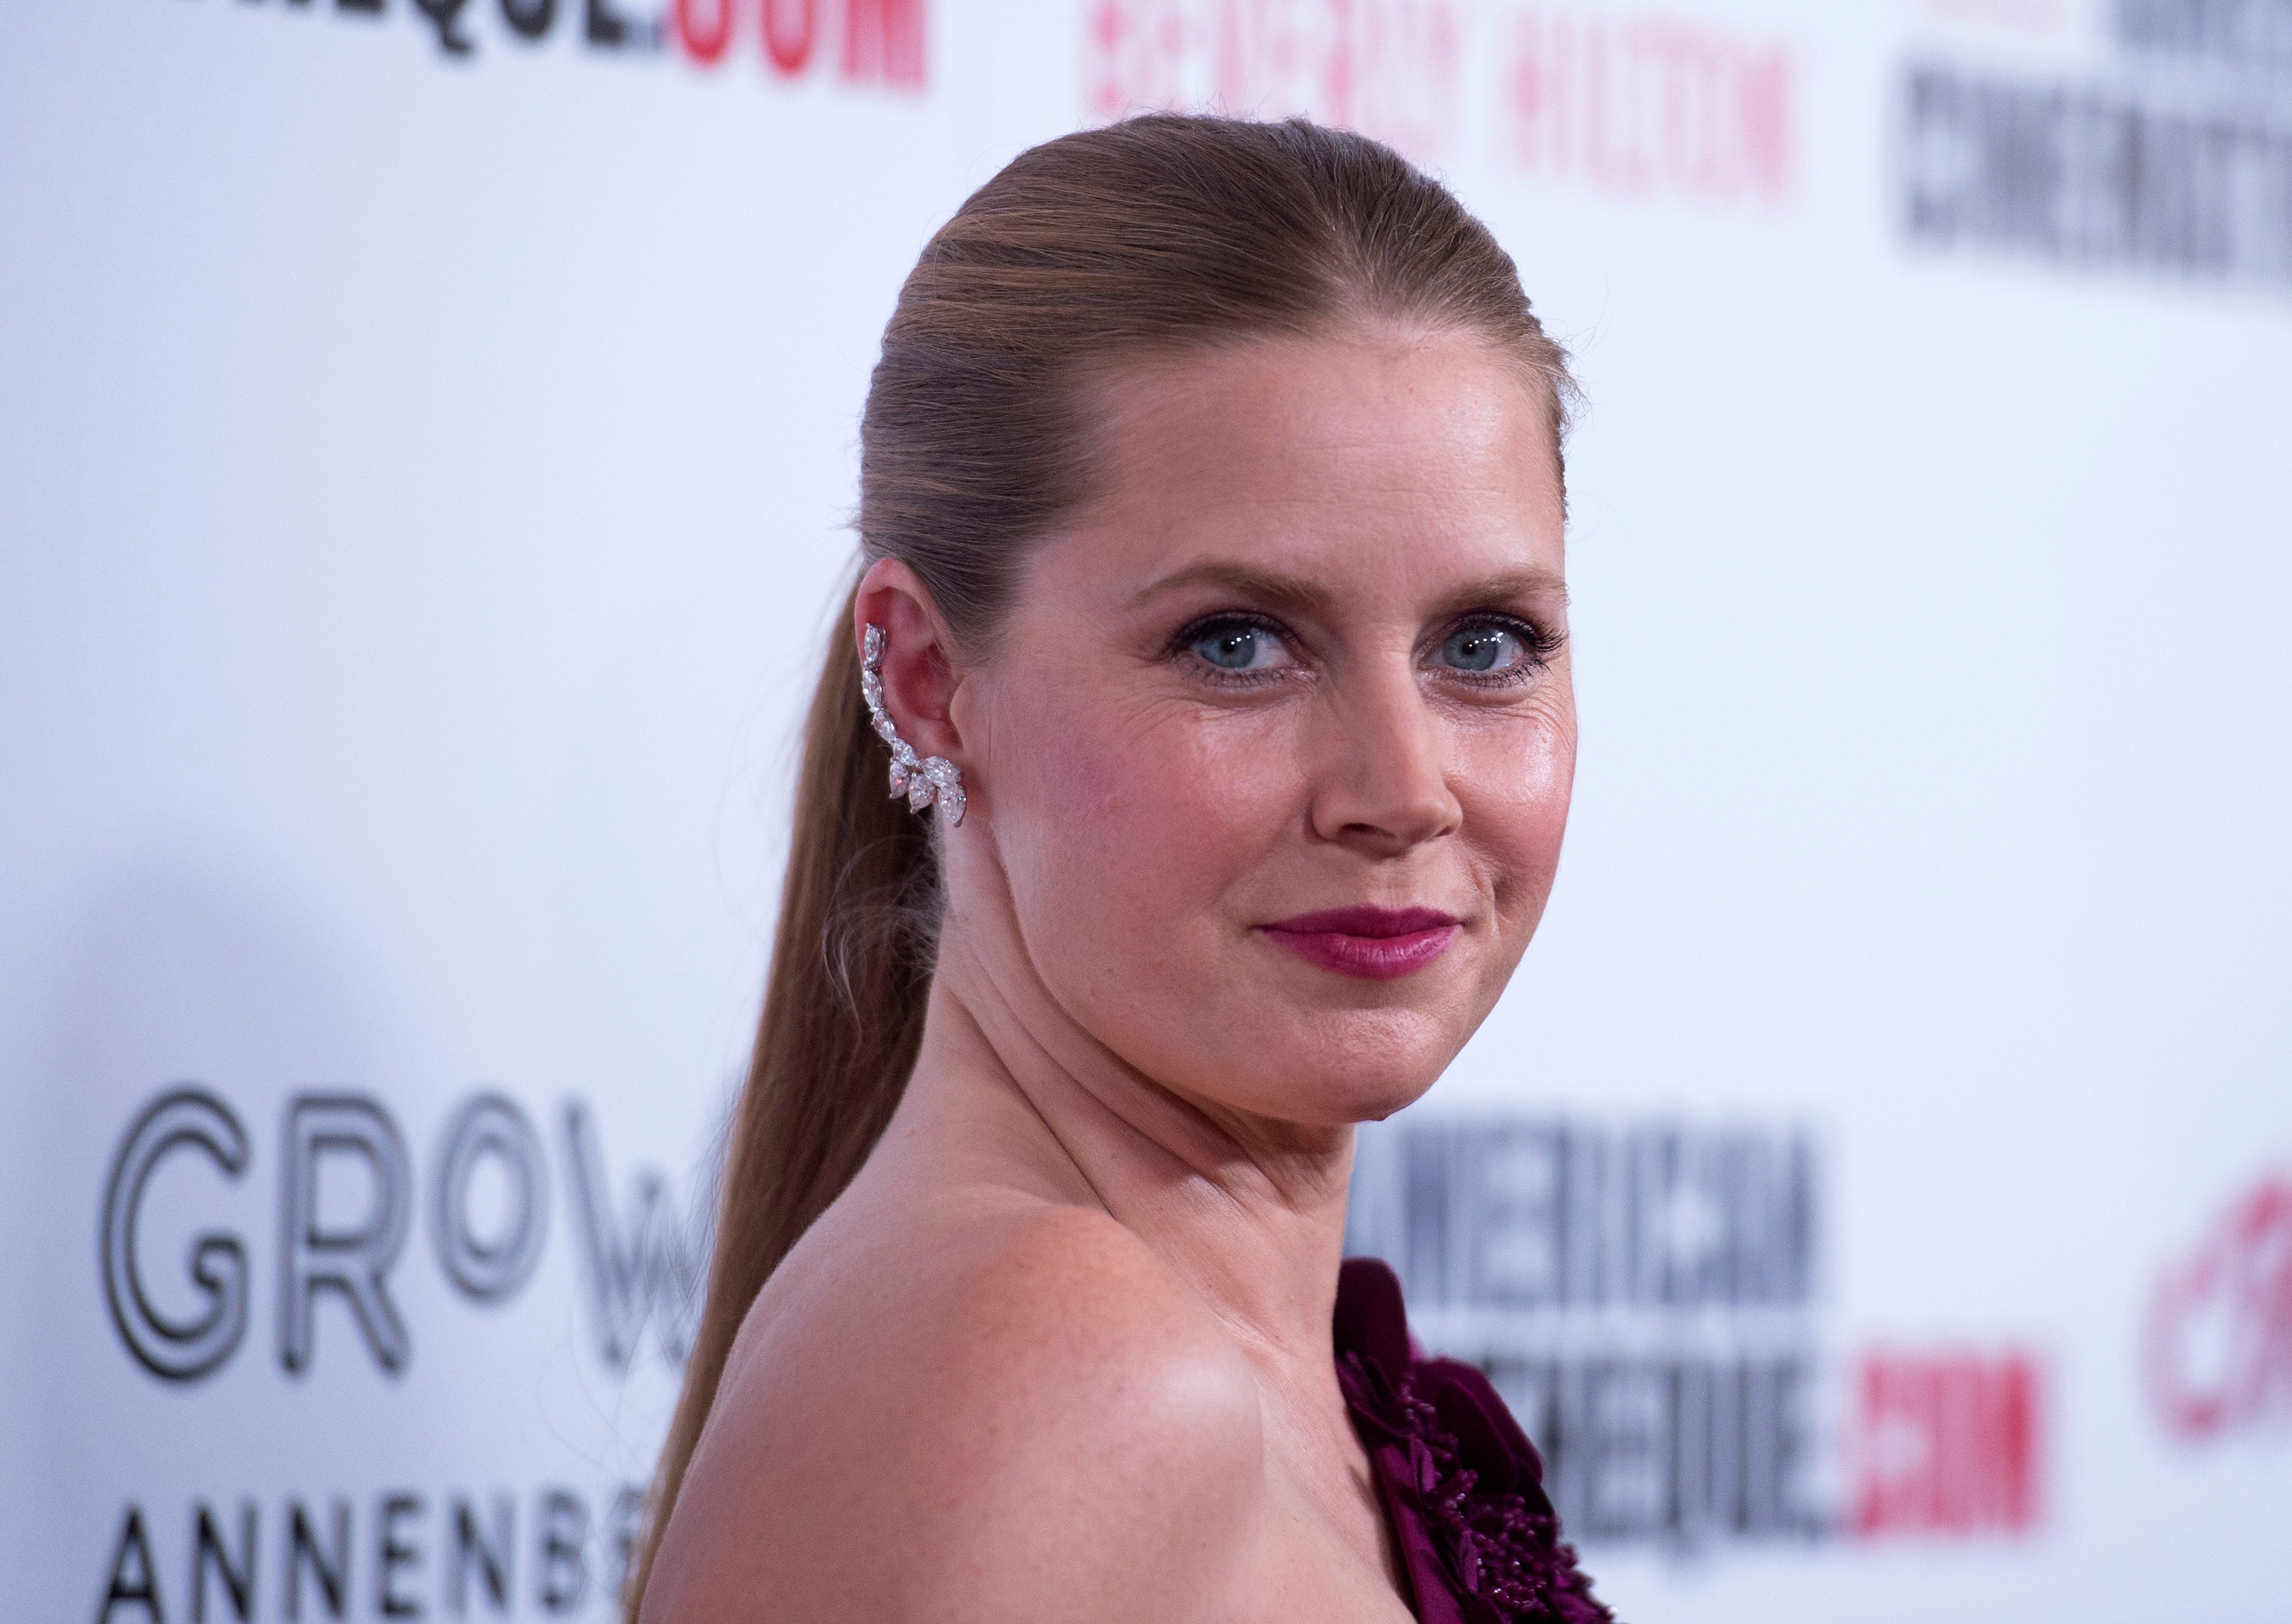 Actress Amy Adams attends the American Cinematheque's 2017 Award Show honoring Amy Adams with the American Cinematheque Award and IMAX with the Sid Grauman Award, on November 10, 2017, in Beverly Hills, California. / AFP PHOTO / CHRIS DELMAS        (Photo credit should read CHRIS DELMAS/AFP/Getty Images)